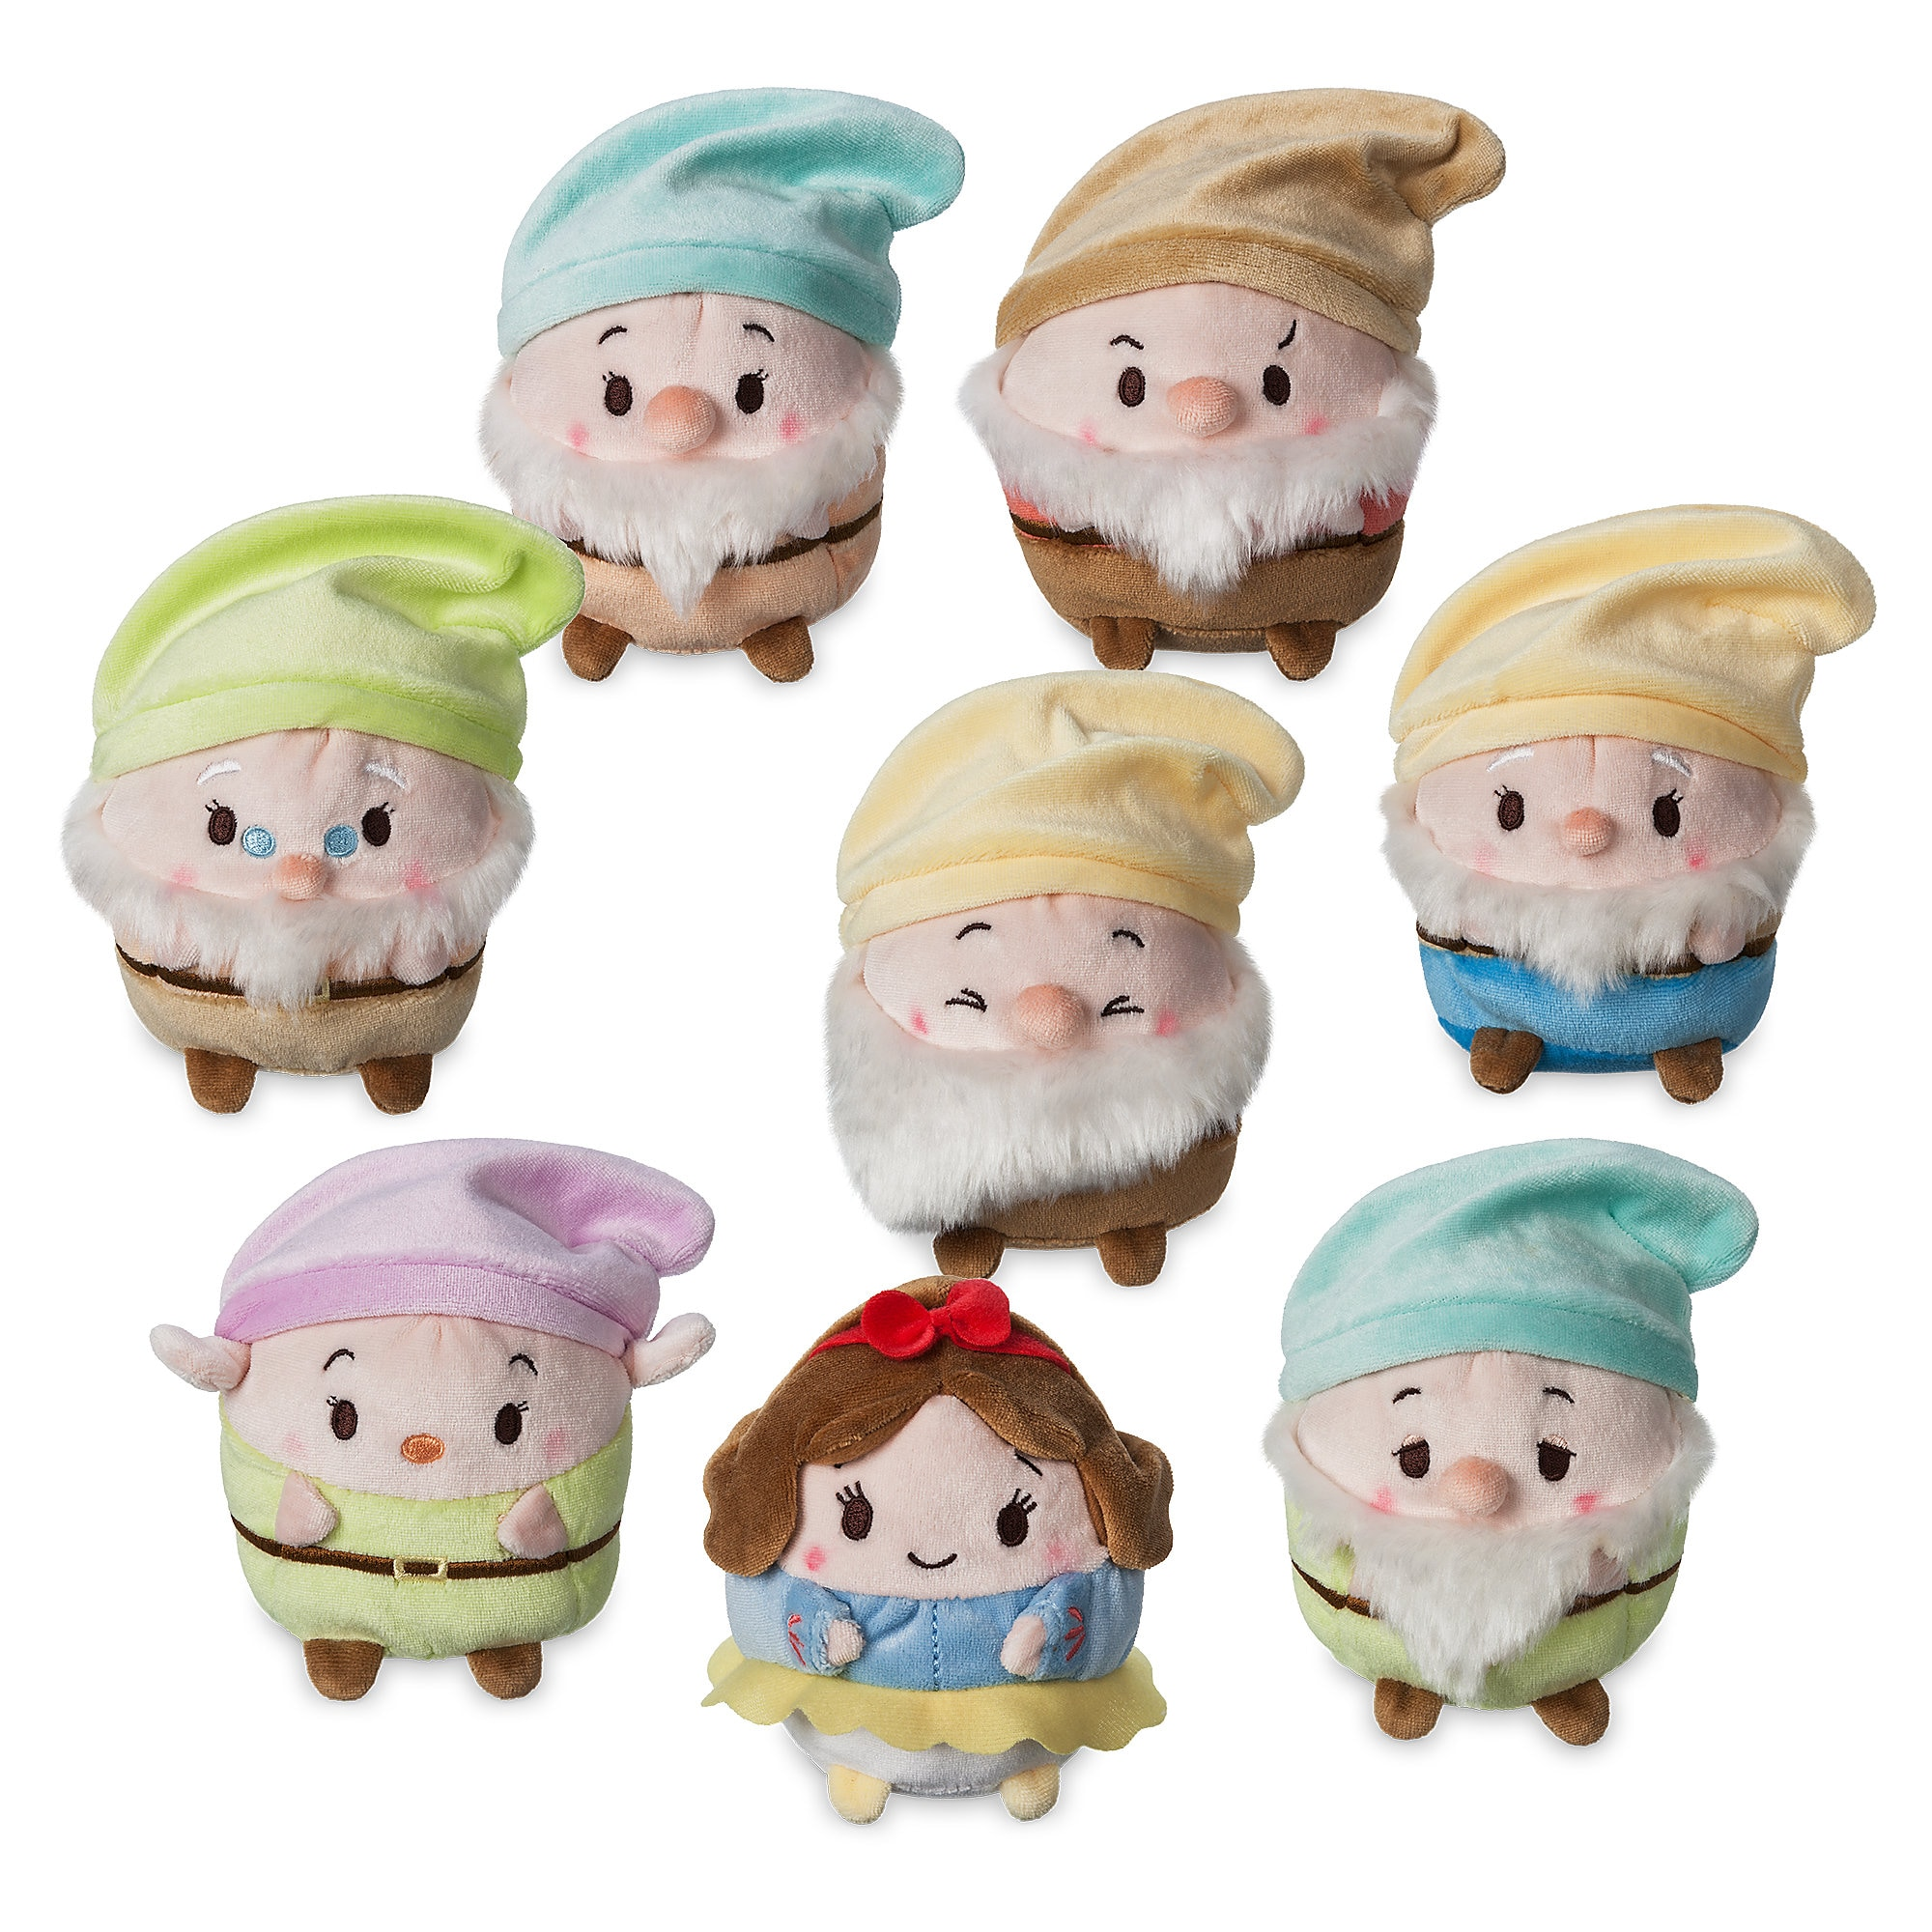 Snow White Ufufy Plush Collection